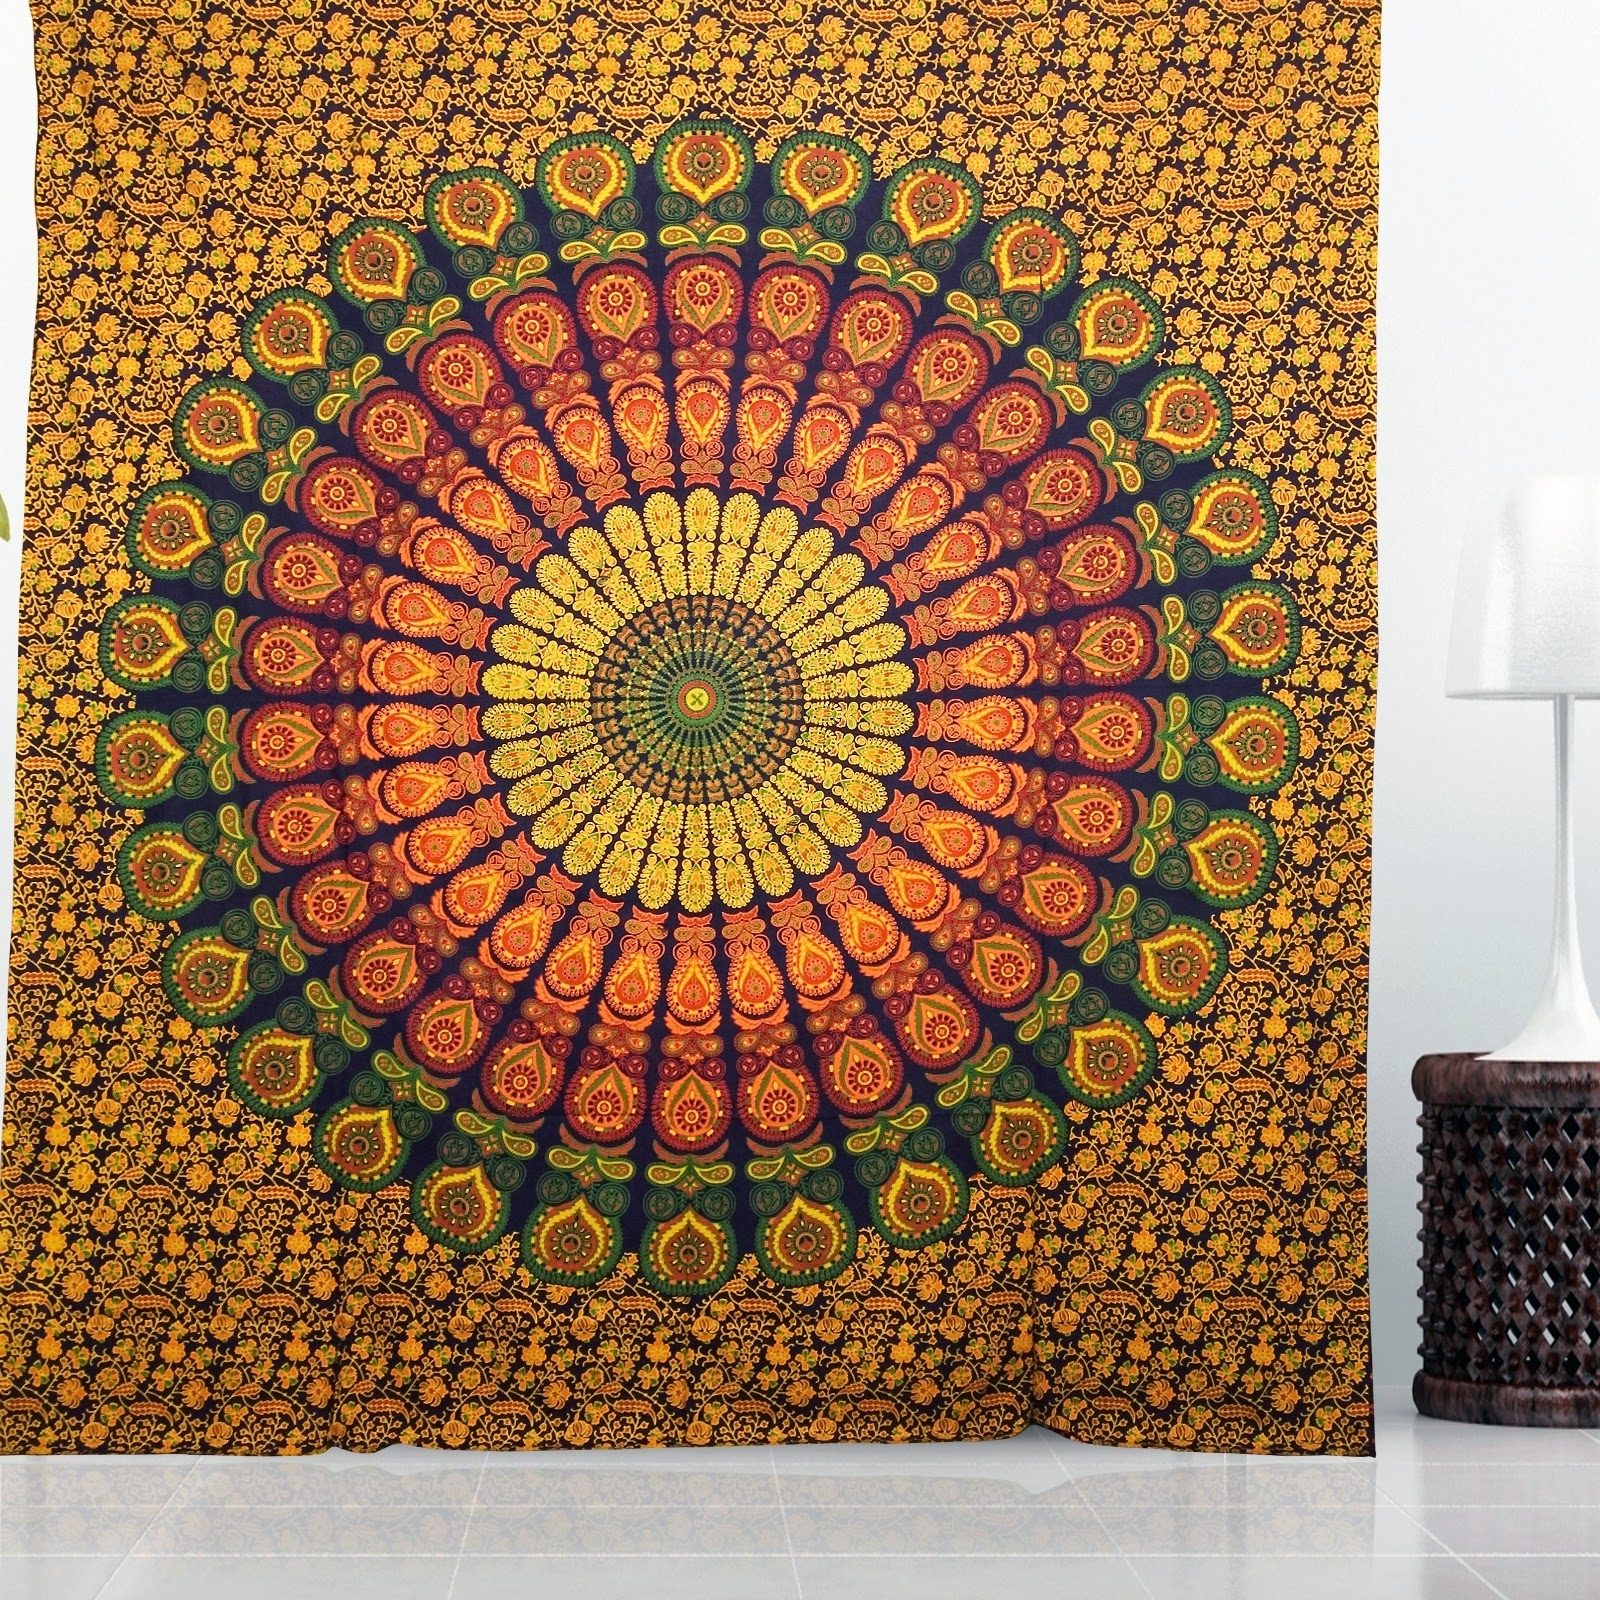 Hippie Tapestries, Mandala Tapestries, Queen Boho Tapestries, Wall Regarding Best And Newest Indian Fabric Wall Art (Gallery 5 of 15)